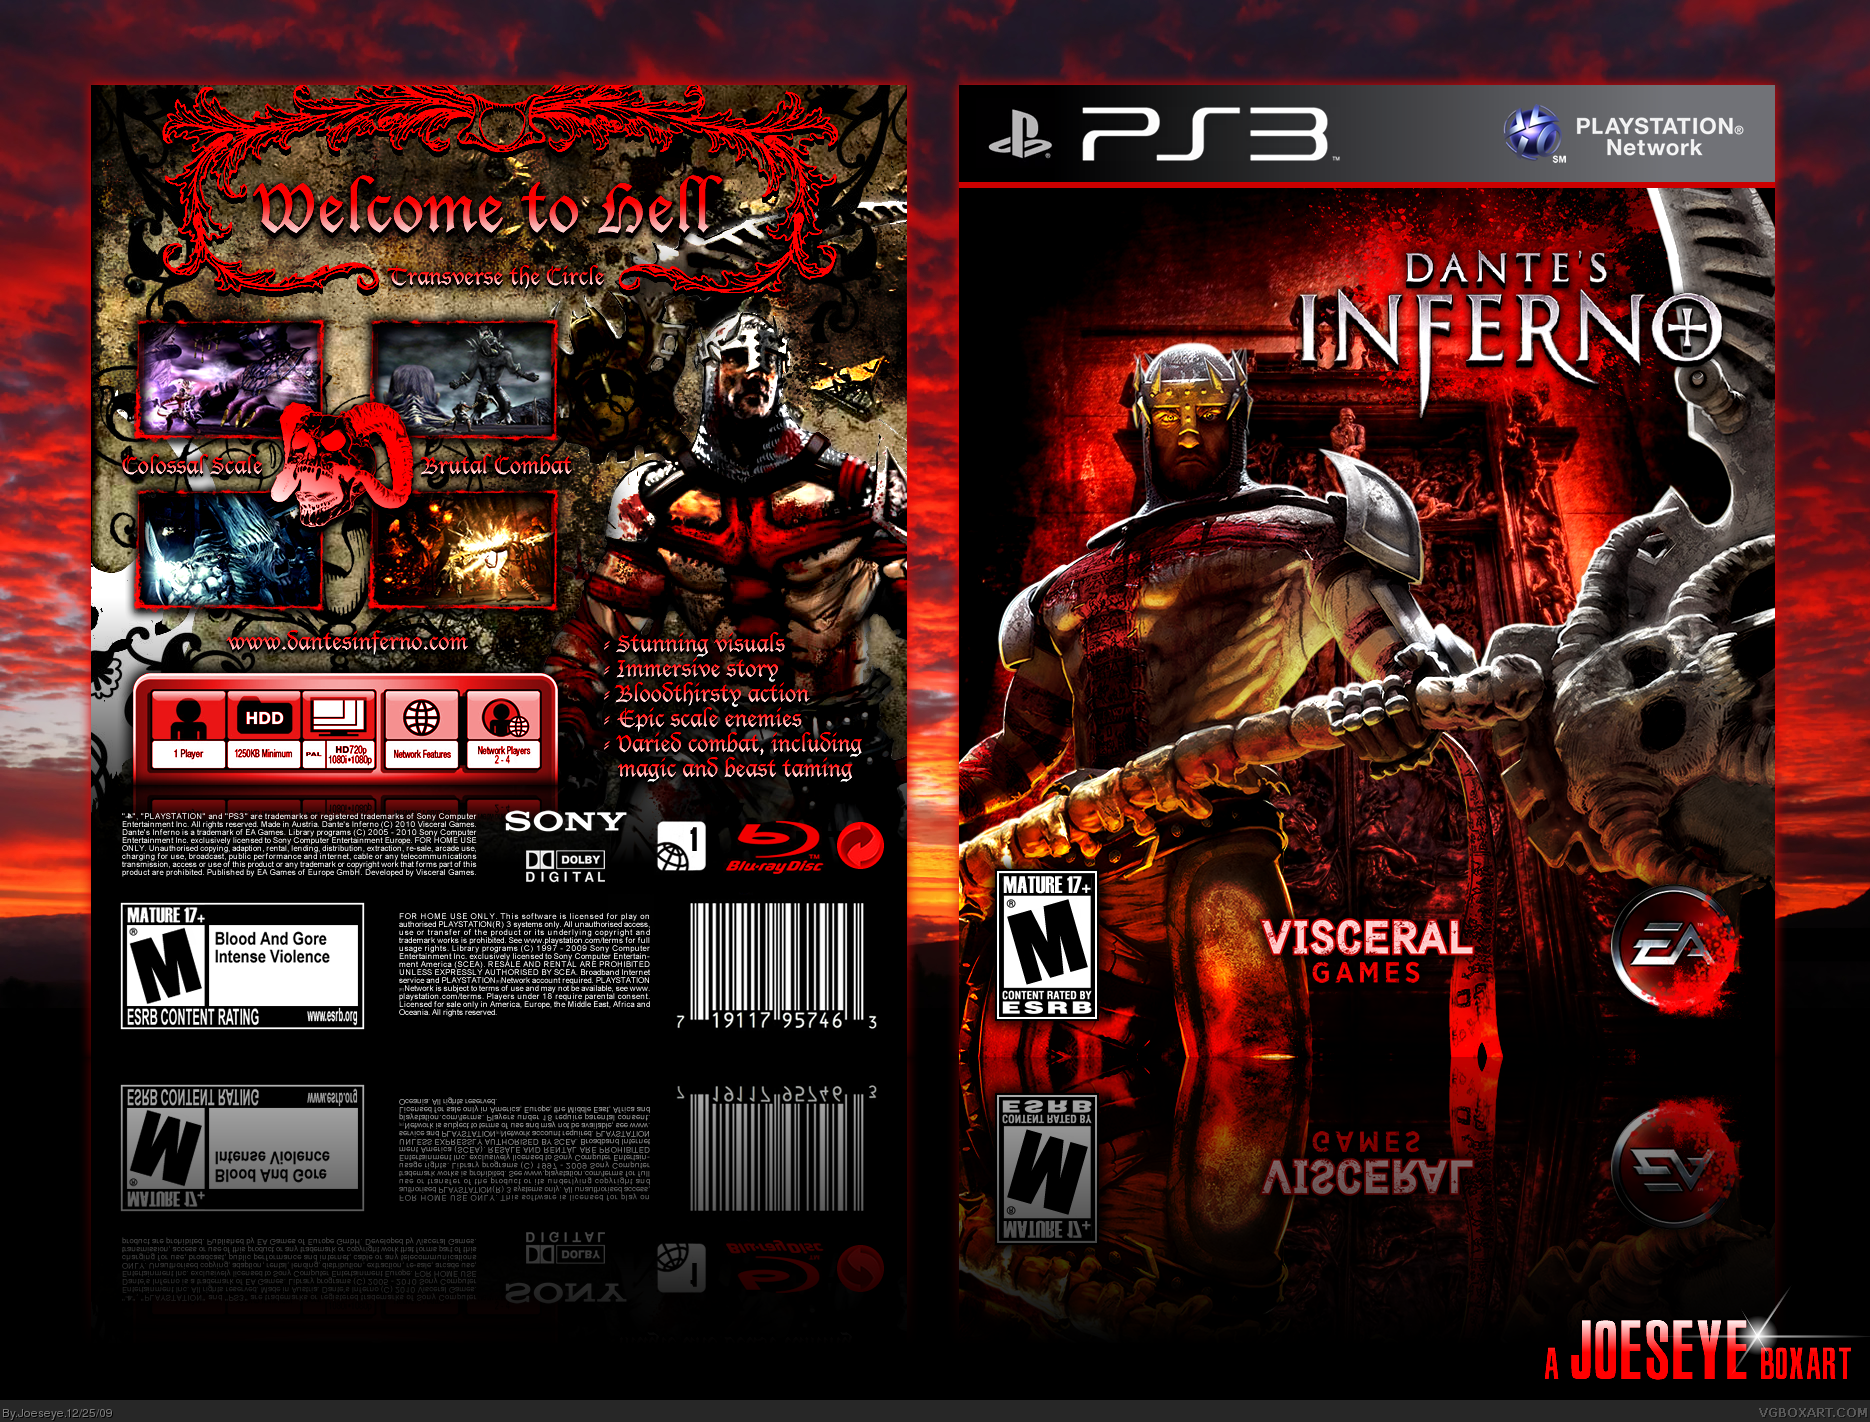 dantes inferno 2 Dante's inferno is a 2010 action video game developed by visceral games and published by electronic arts the game was released for xbox 360, playstation 3, playstation portable in february 2010 the playstation portable version was developed by artificial mind and movement.